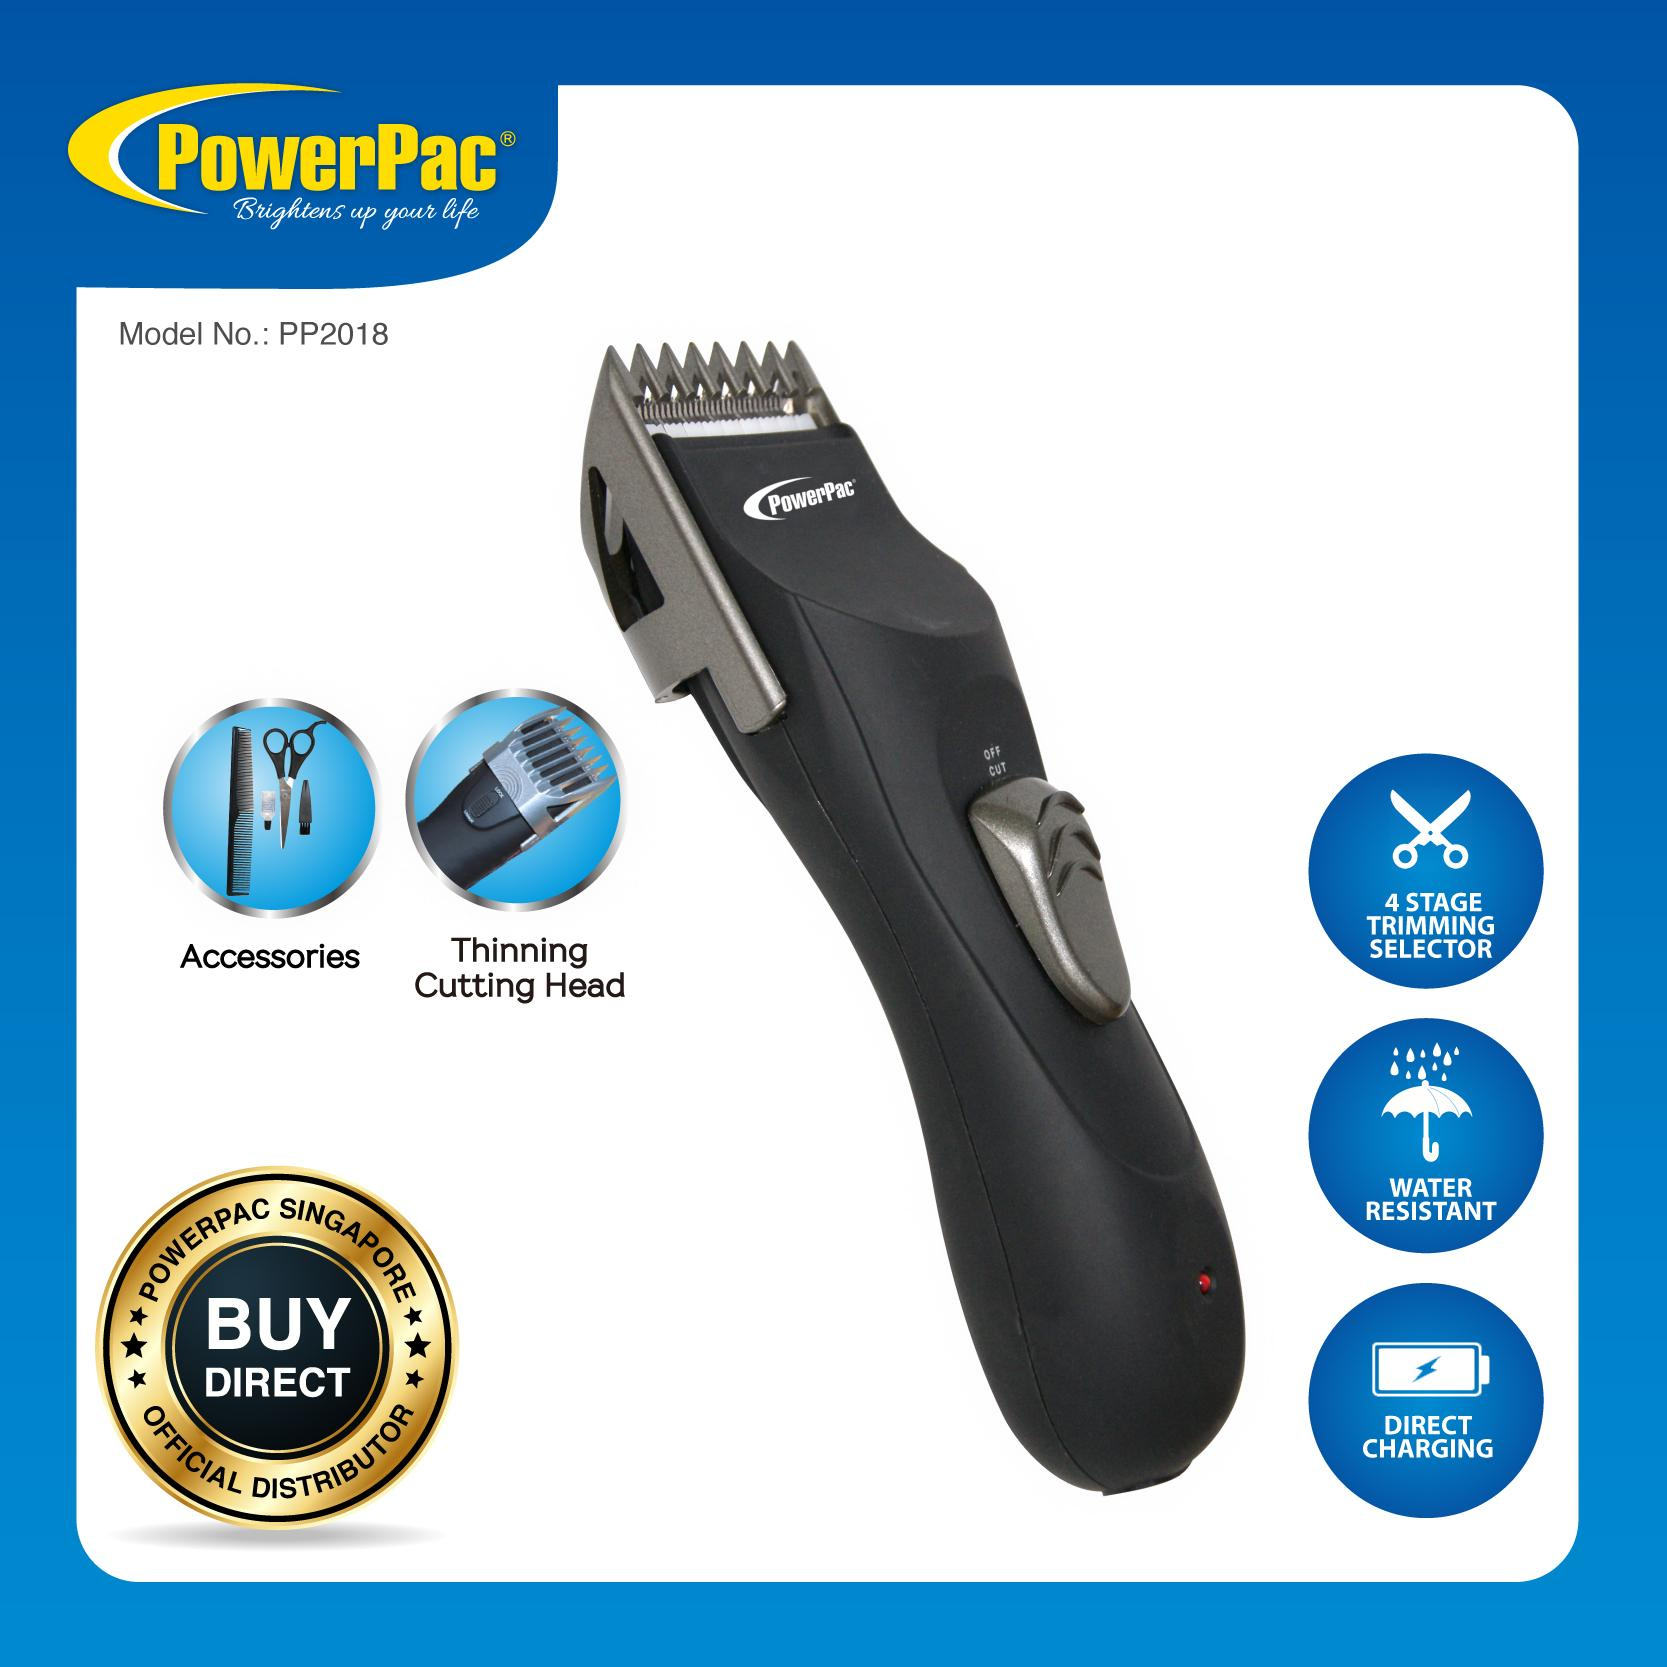 Powerpac Cordless Hair Cutter / Clipper (pp2018) By Powerpac.